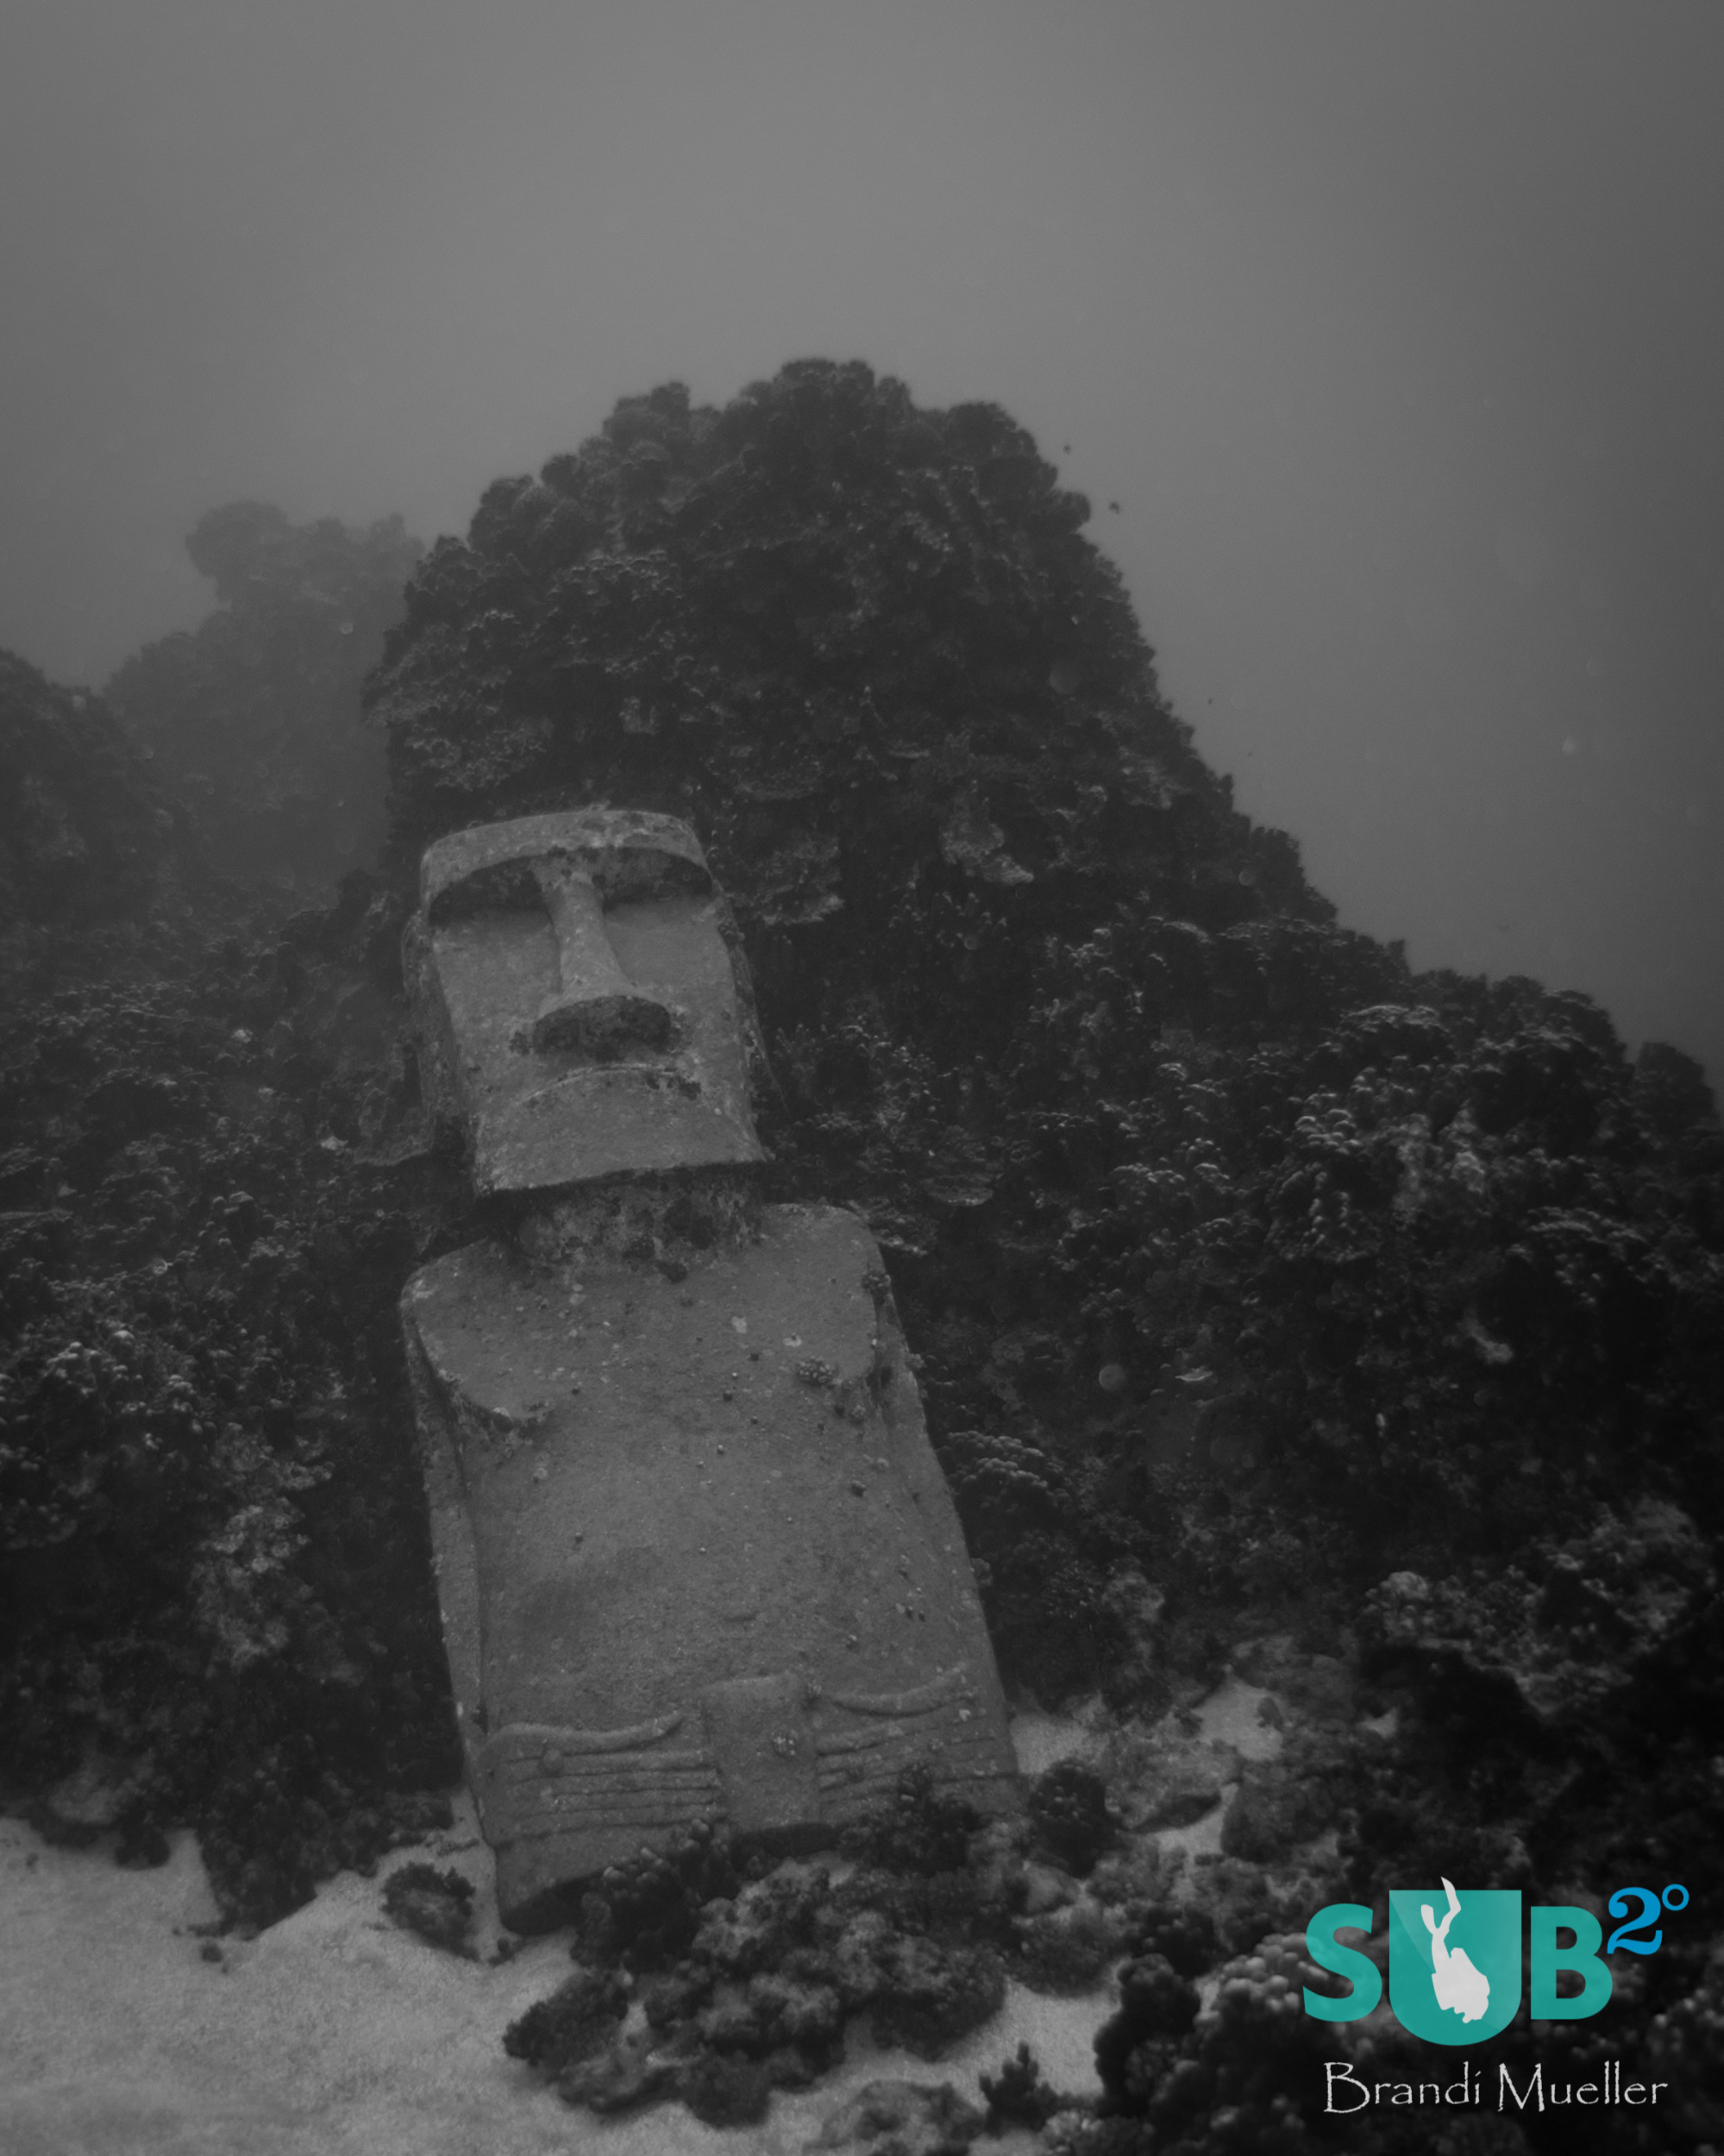 The Underwater Moai of Easter Island